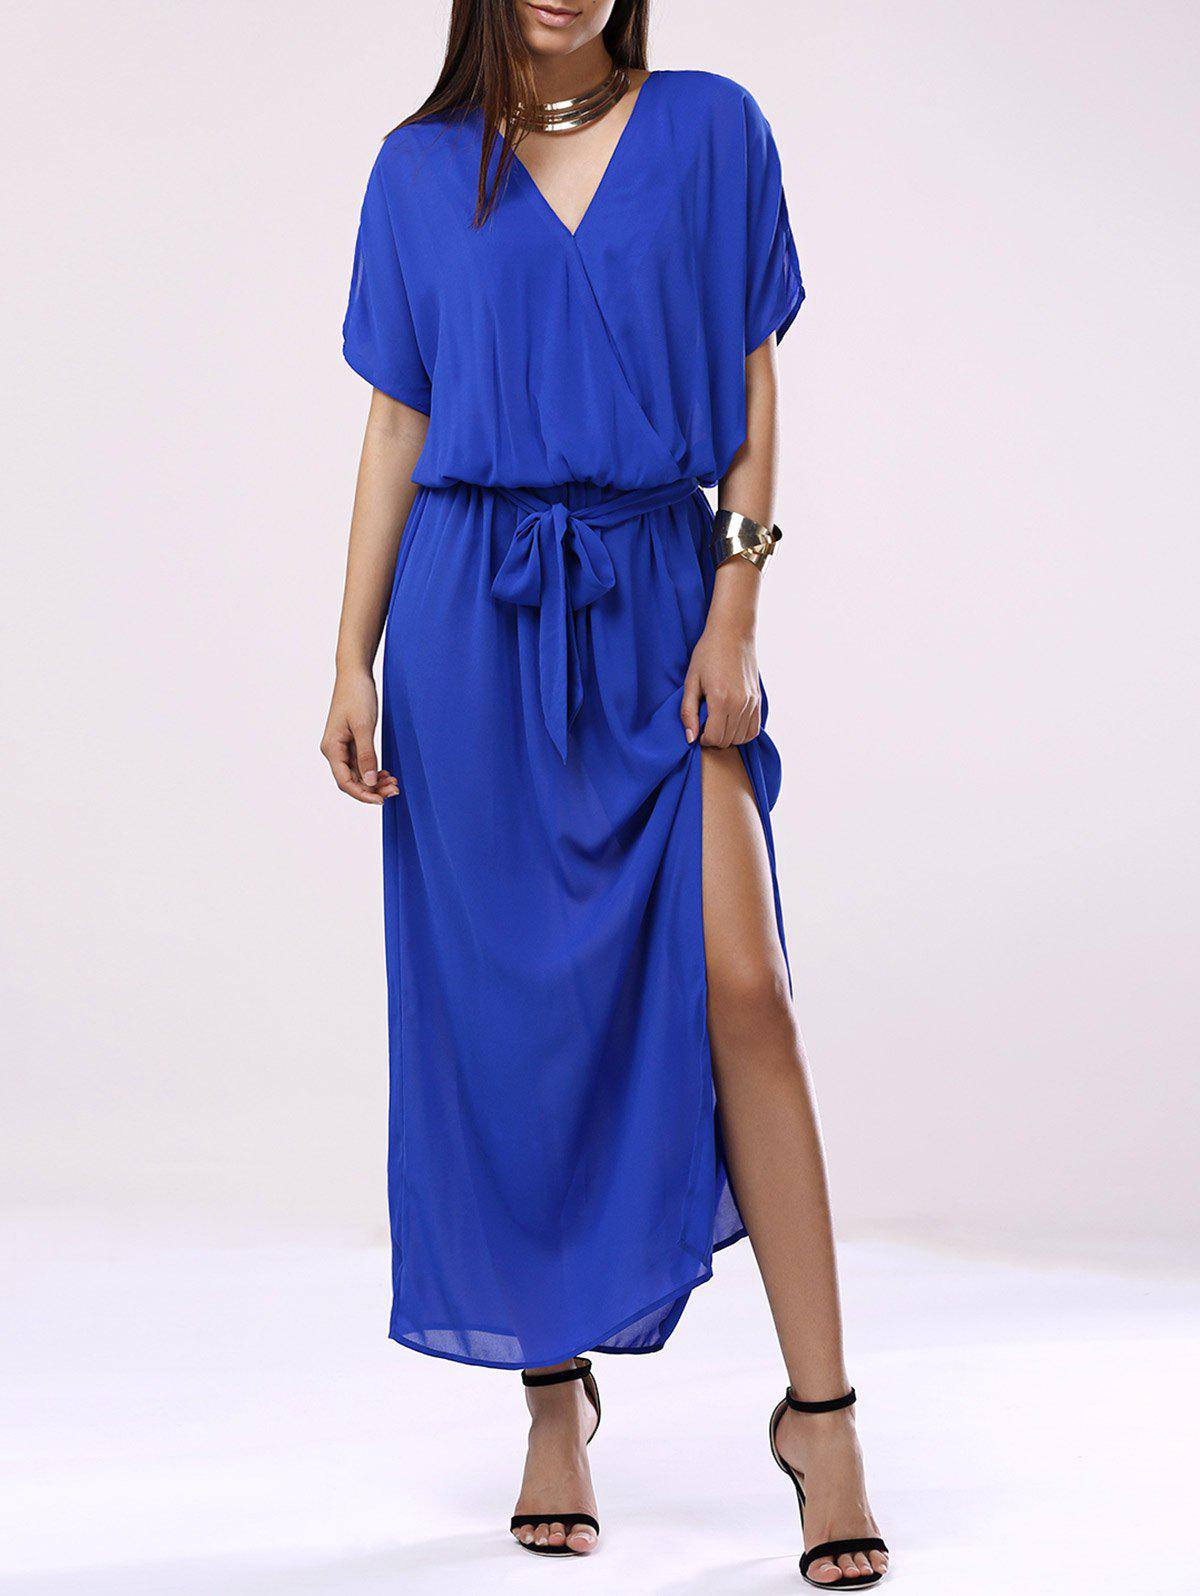 Shop Elegant V-Neck 3/4 Sleeve Chiffon Dress